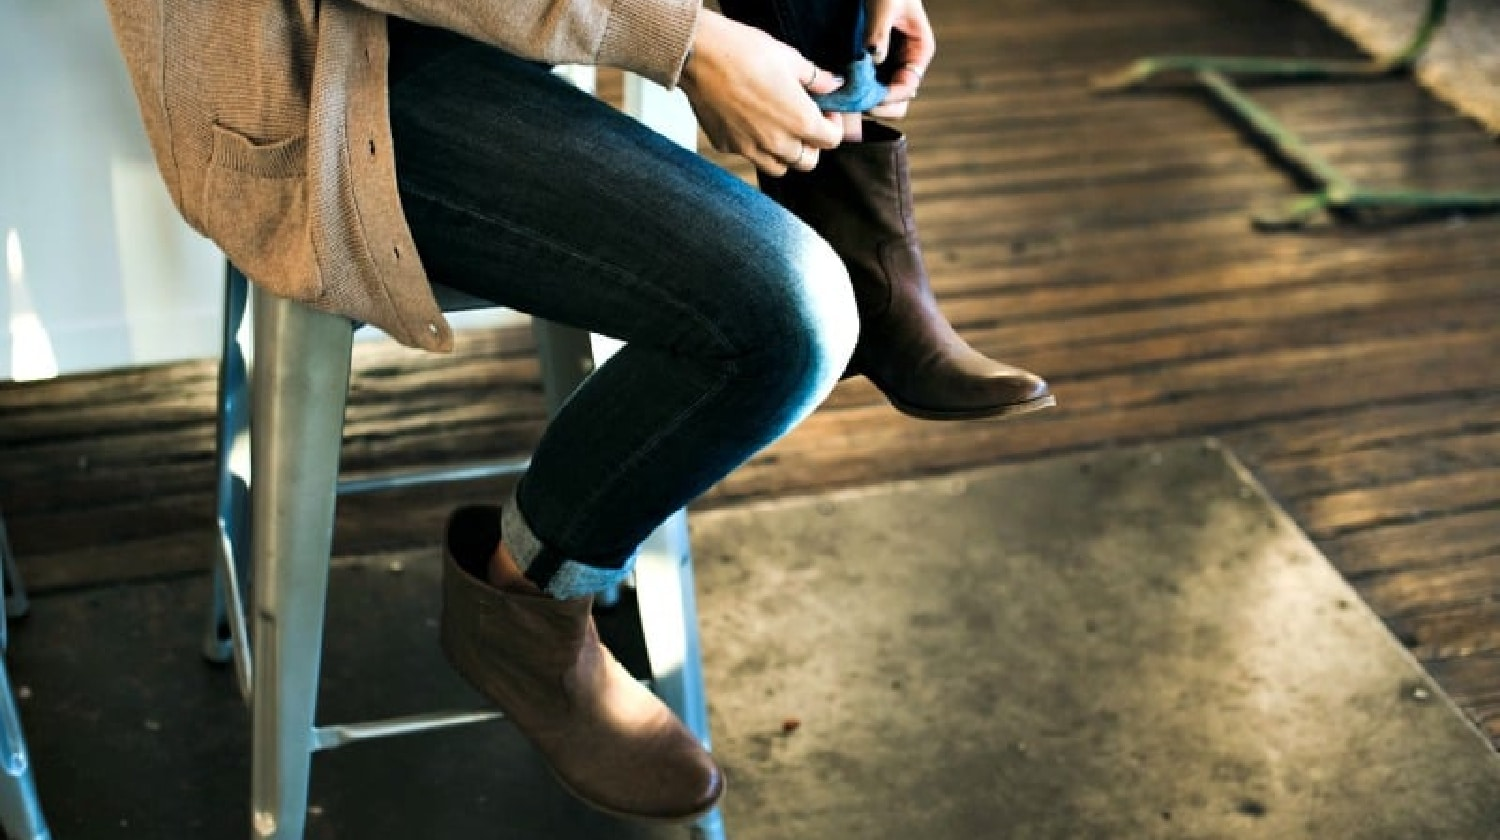 Woman sitting on stool to roll her jeans over a pair of leather ankle boots